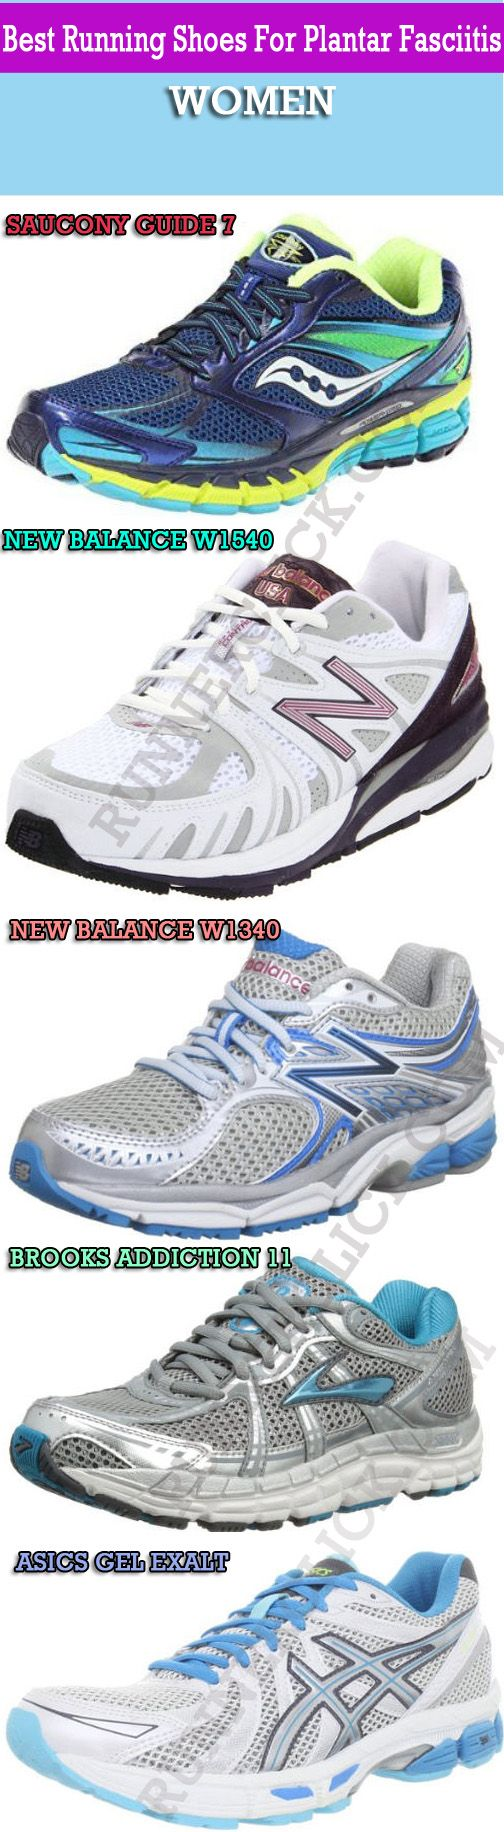 ff184f0aff How to purchase the proper running shoes for those dealing with plantar  fasciitis. #runningshoes